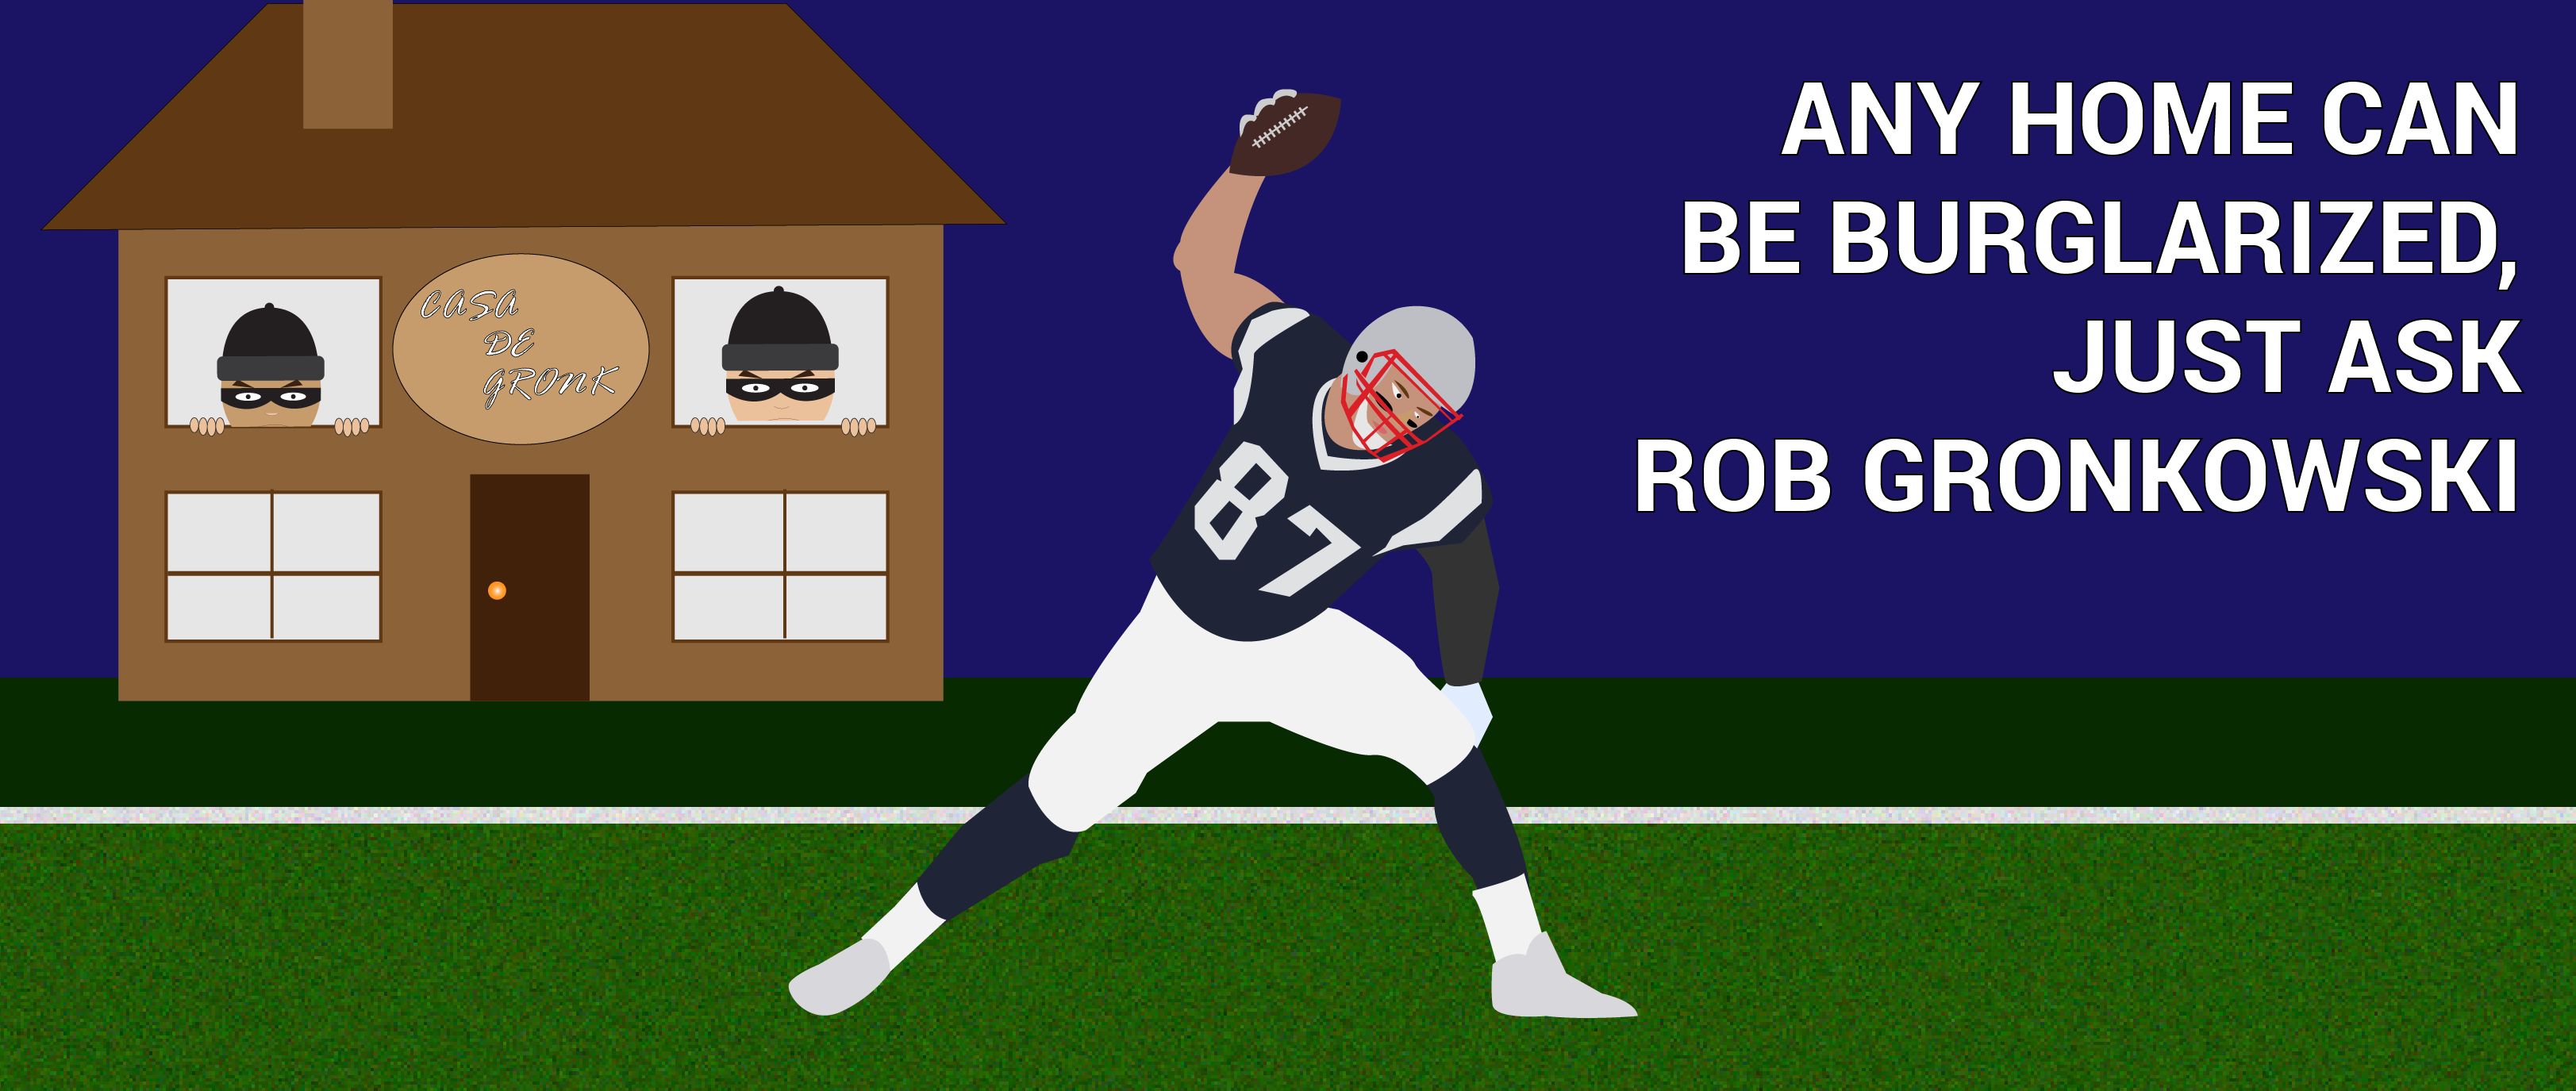 New England Patriots Tight End Rob Gronkowski Home Robbed